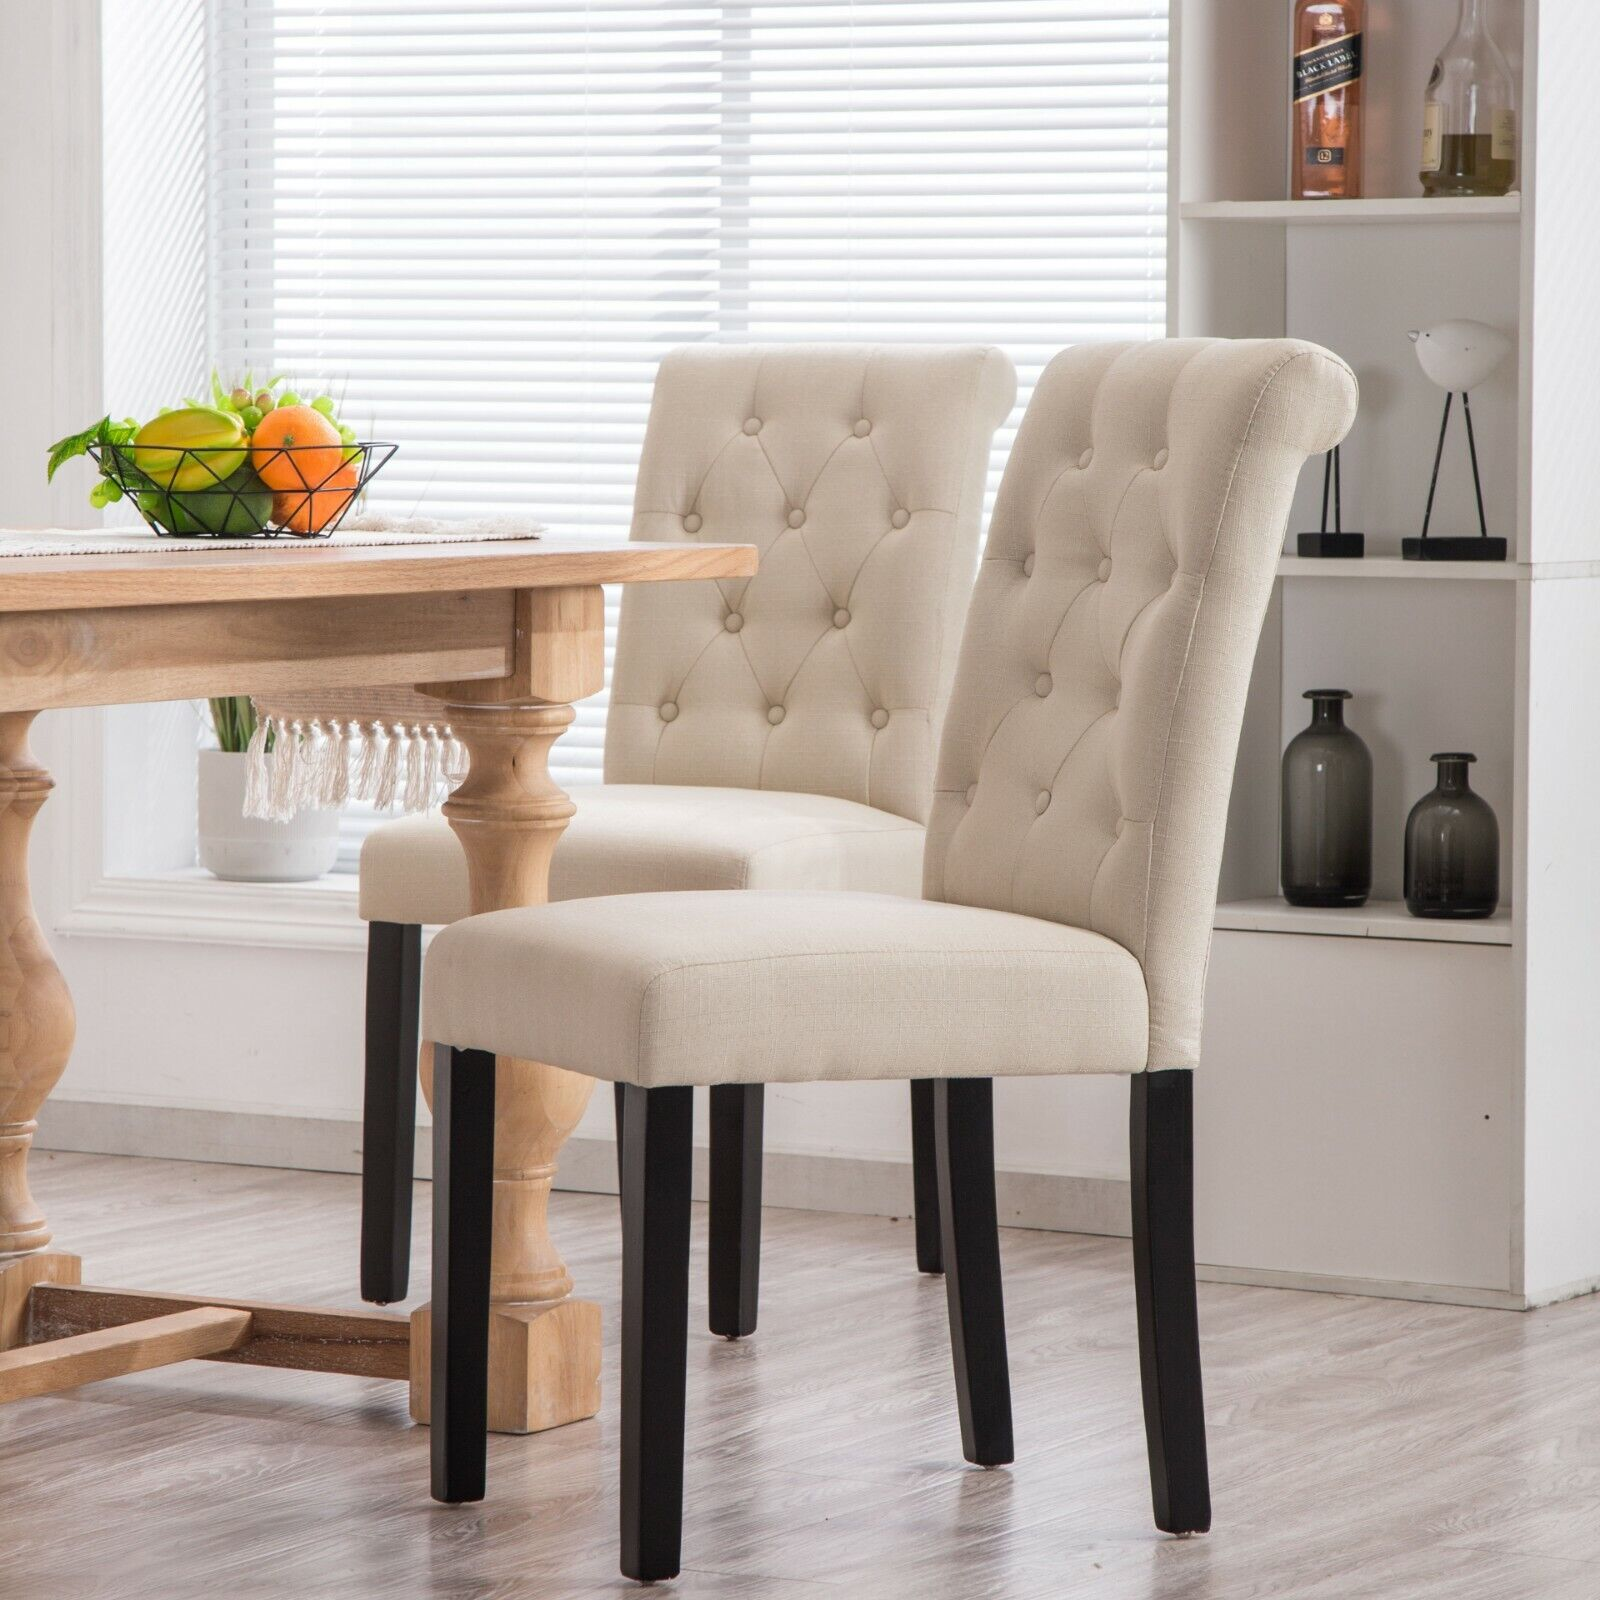 Yeefy Fabric Habit Solid Wood Tufted Parsons Dining Chair